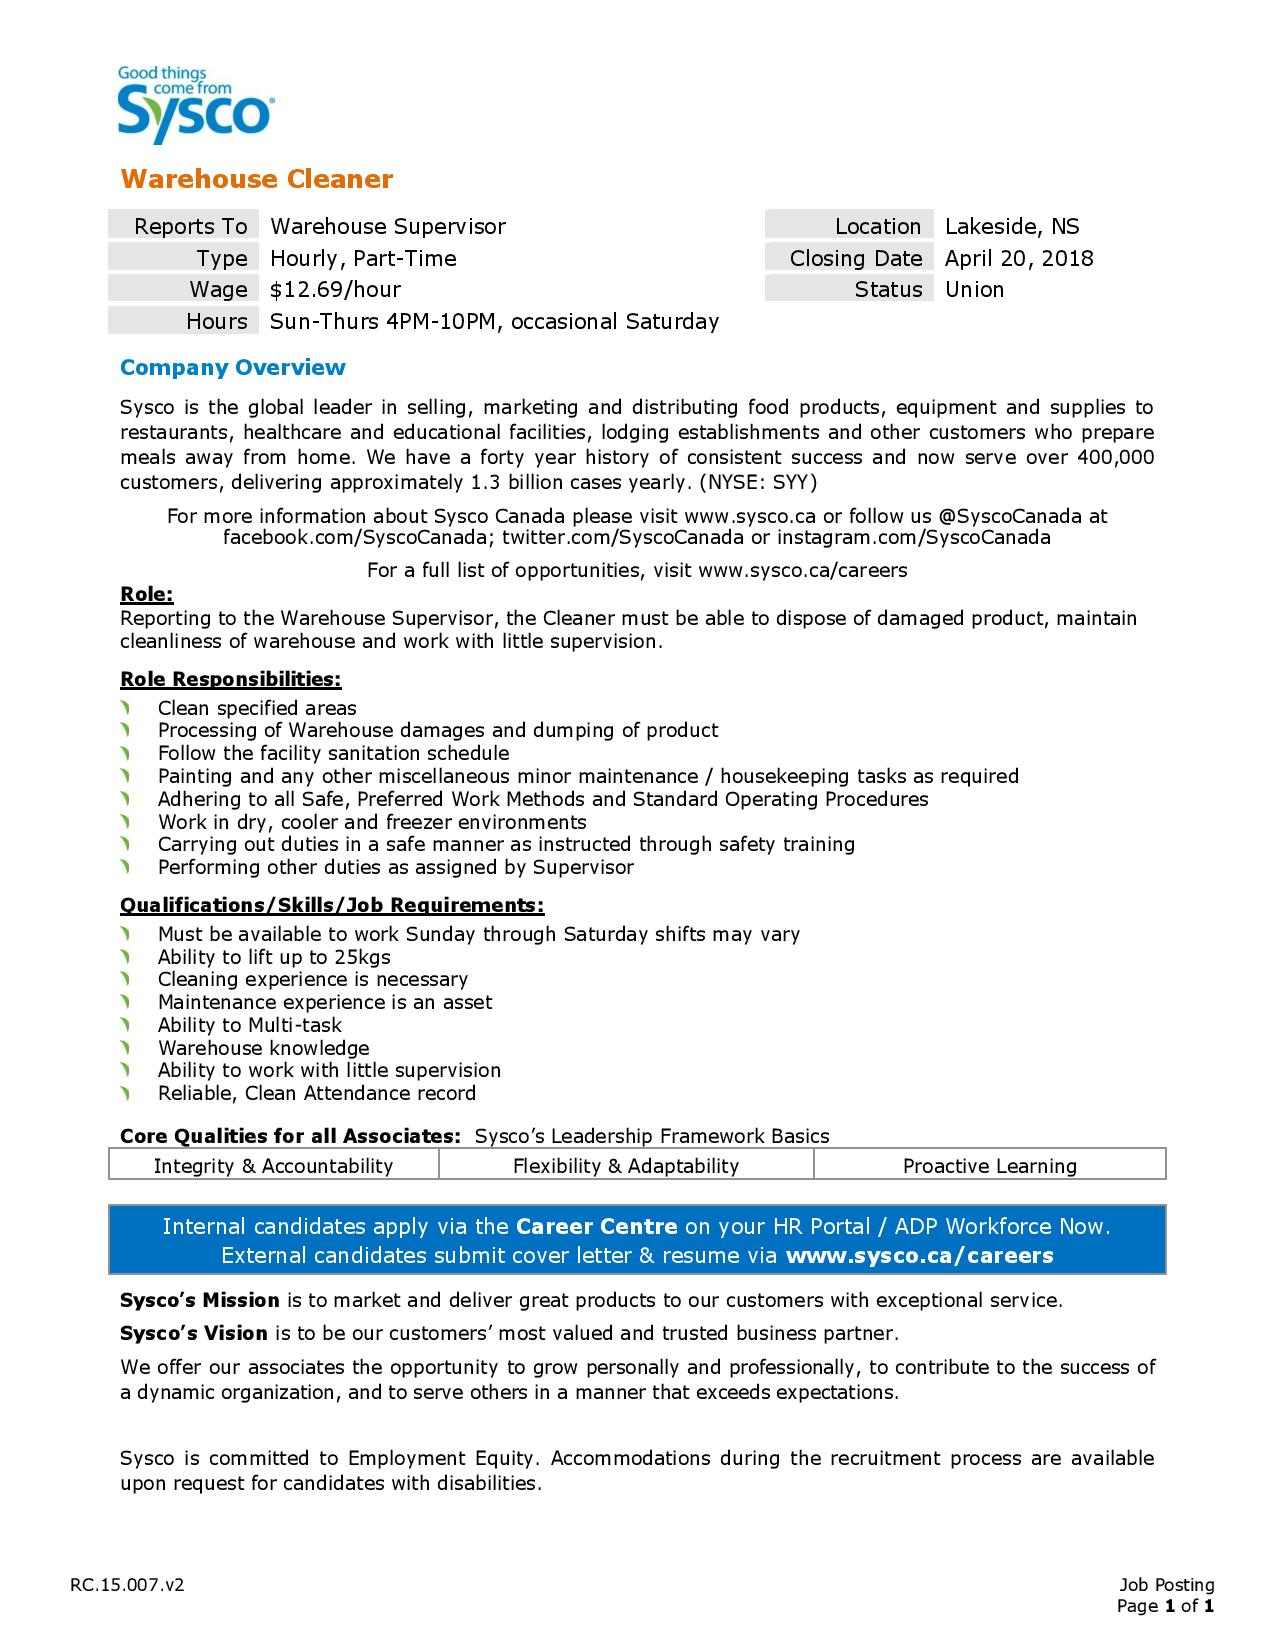 Sysco - Warehouse Cleaner | Opportunity Place Resource Center